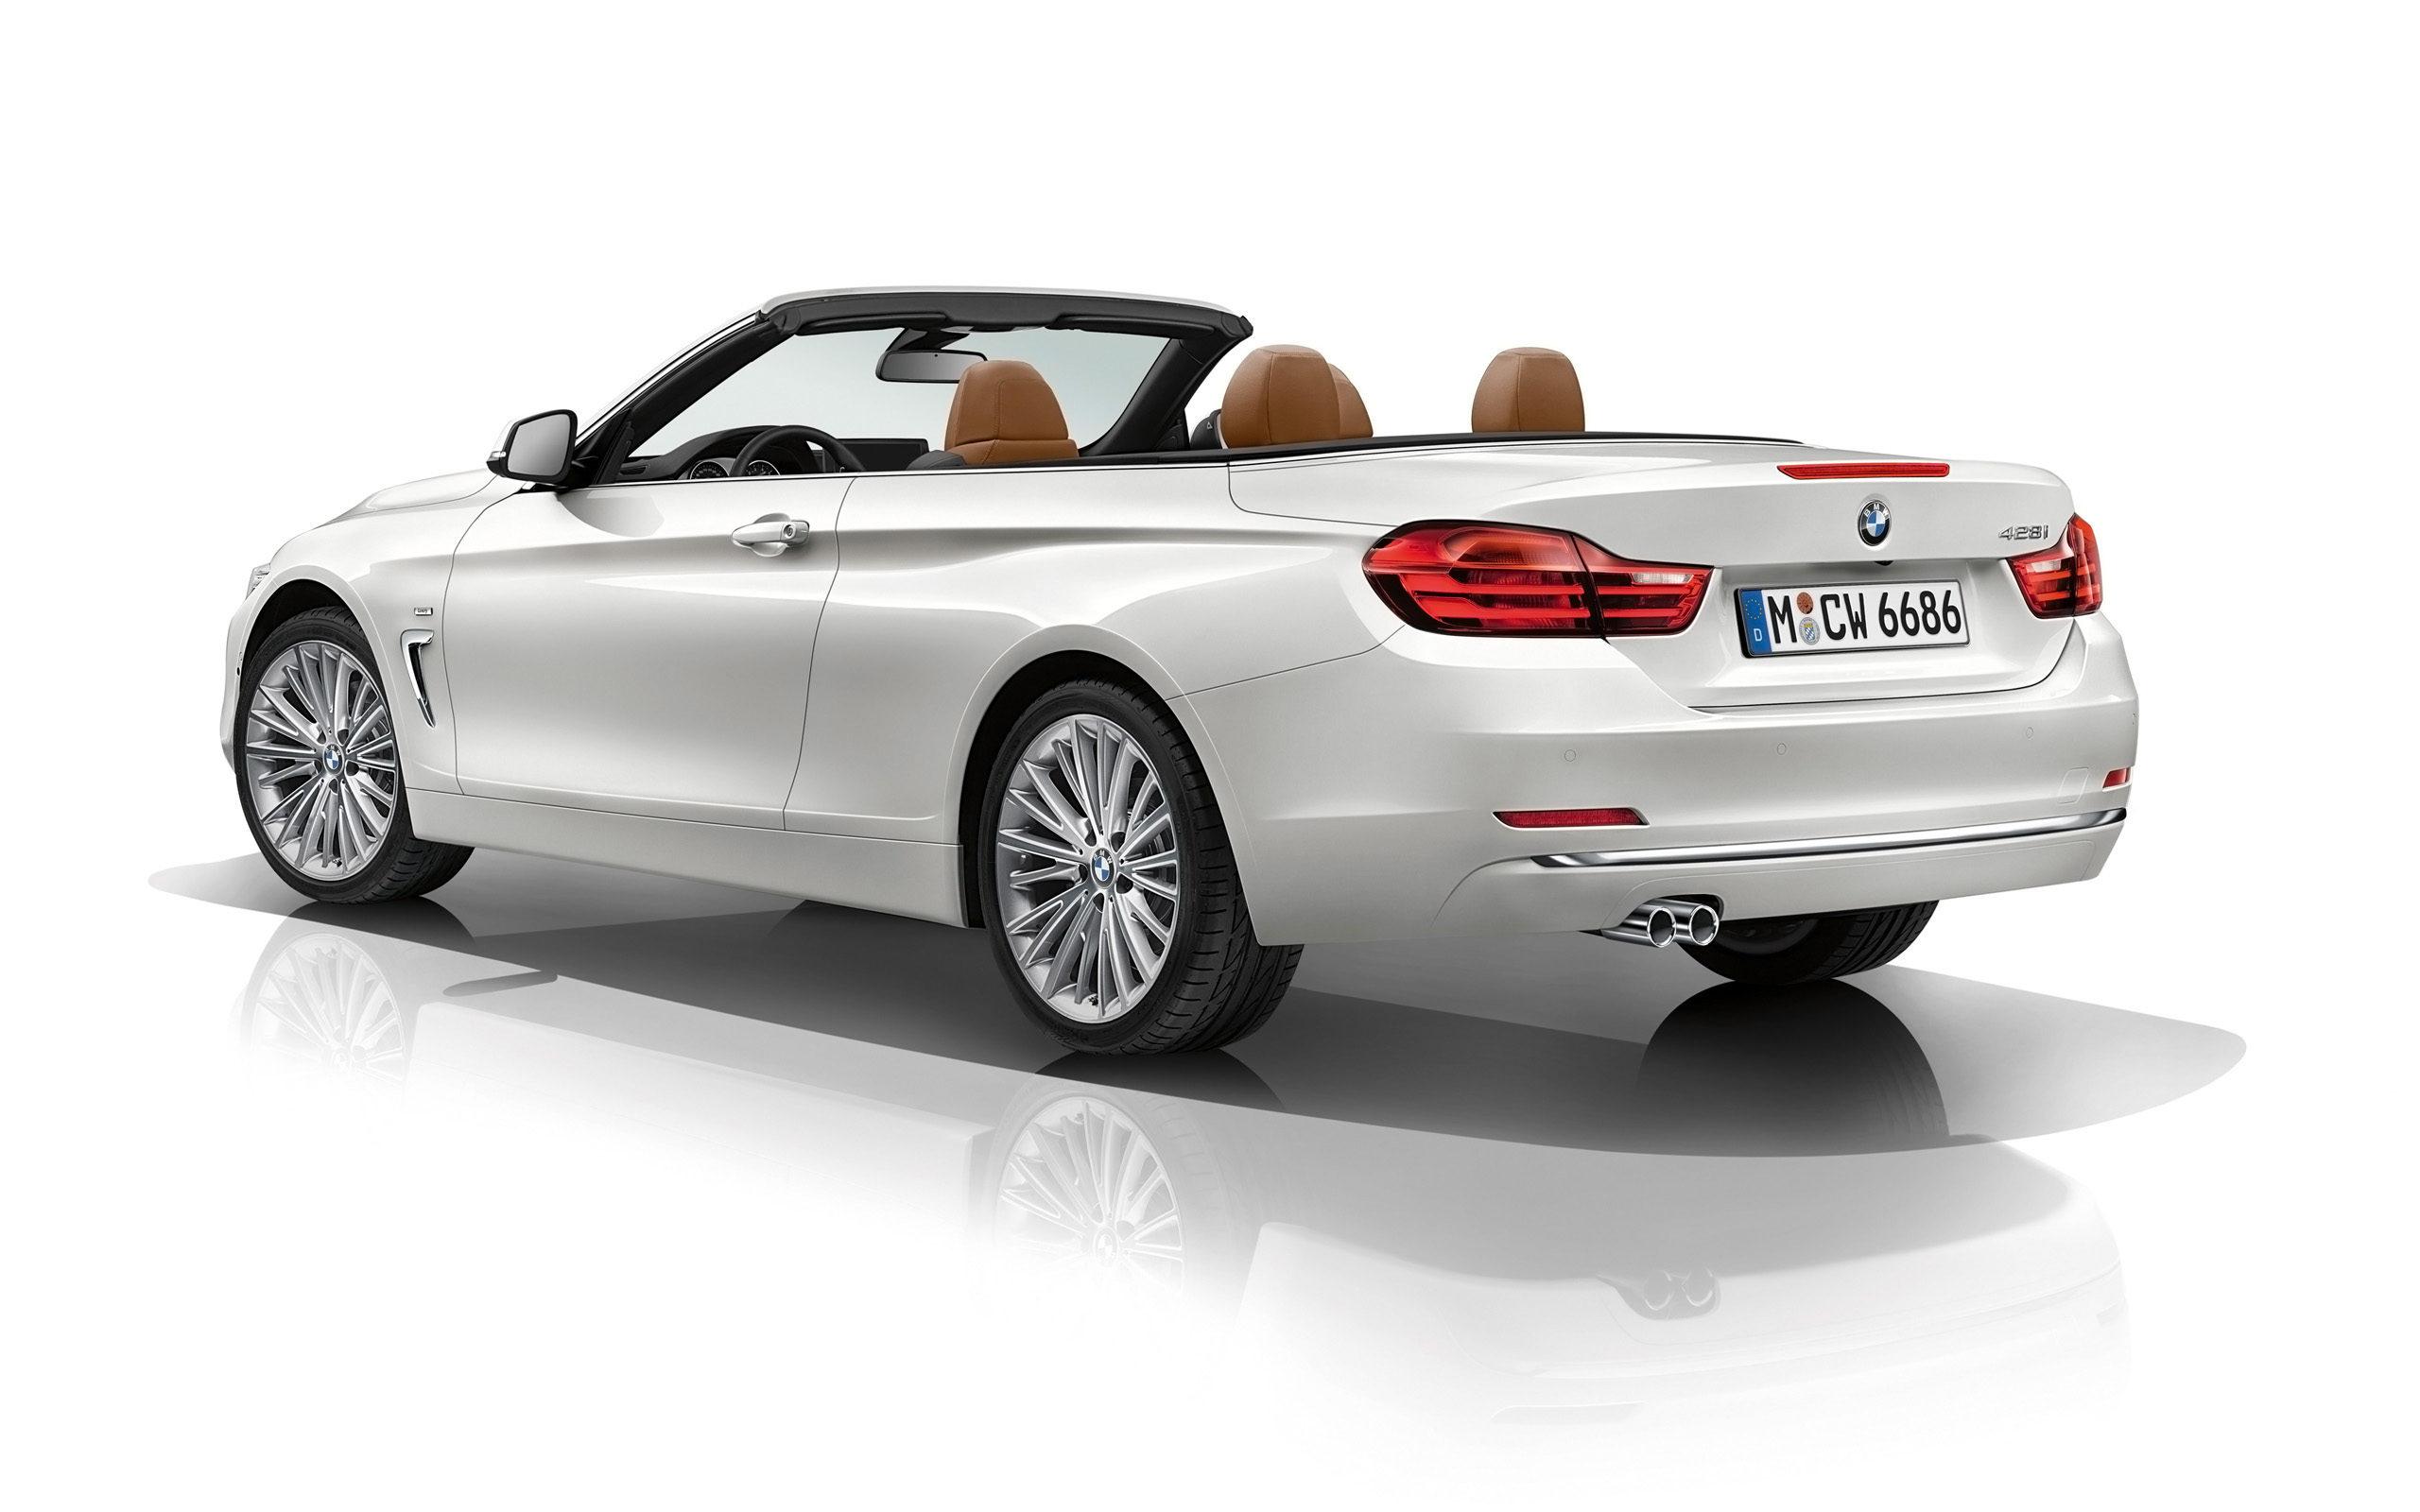 2019 BMW 4 Series Convertible photo - 6